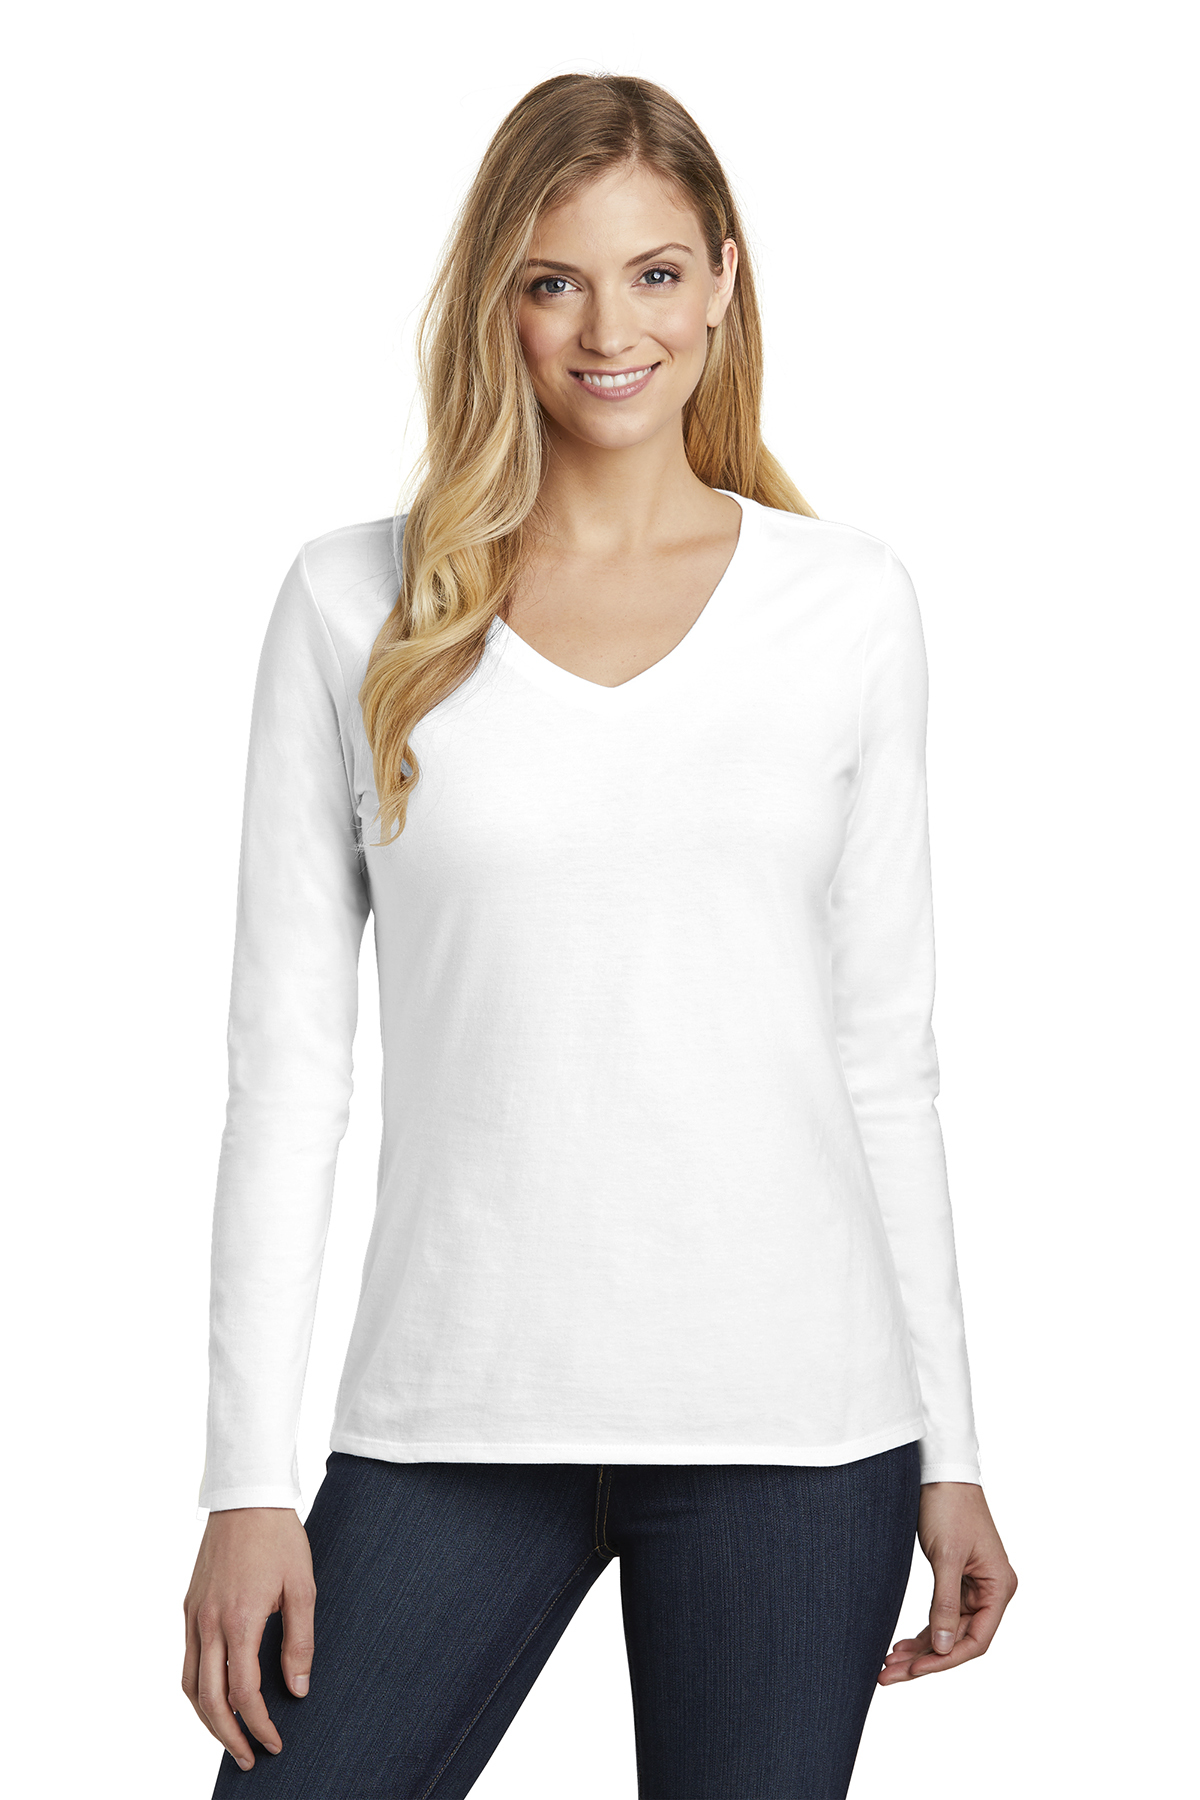 District DT6201 - Women's Very Important Tee Long Sleeve ...